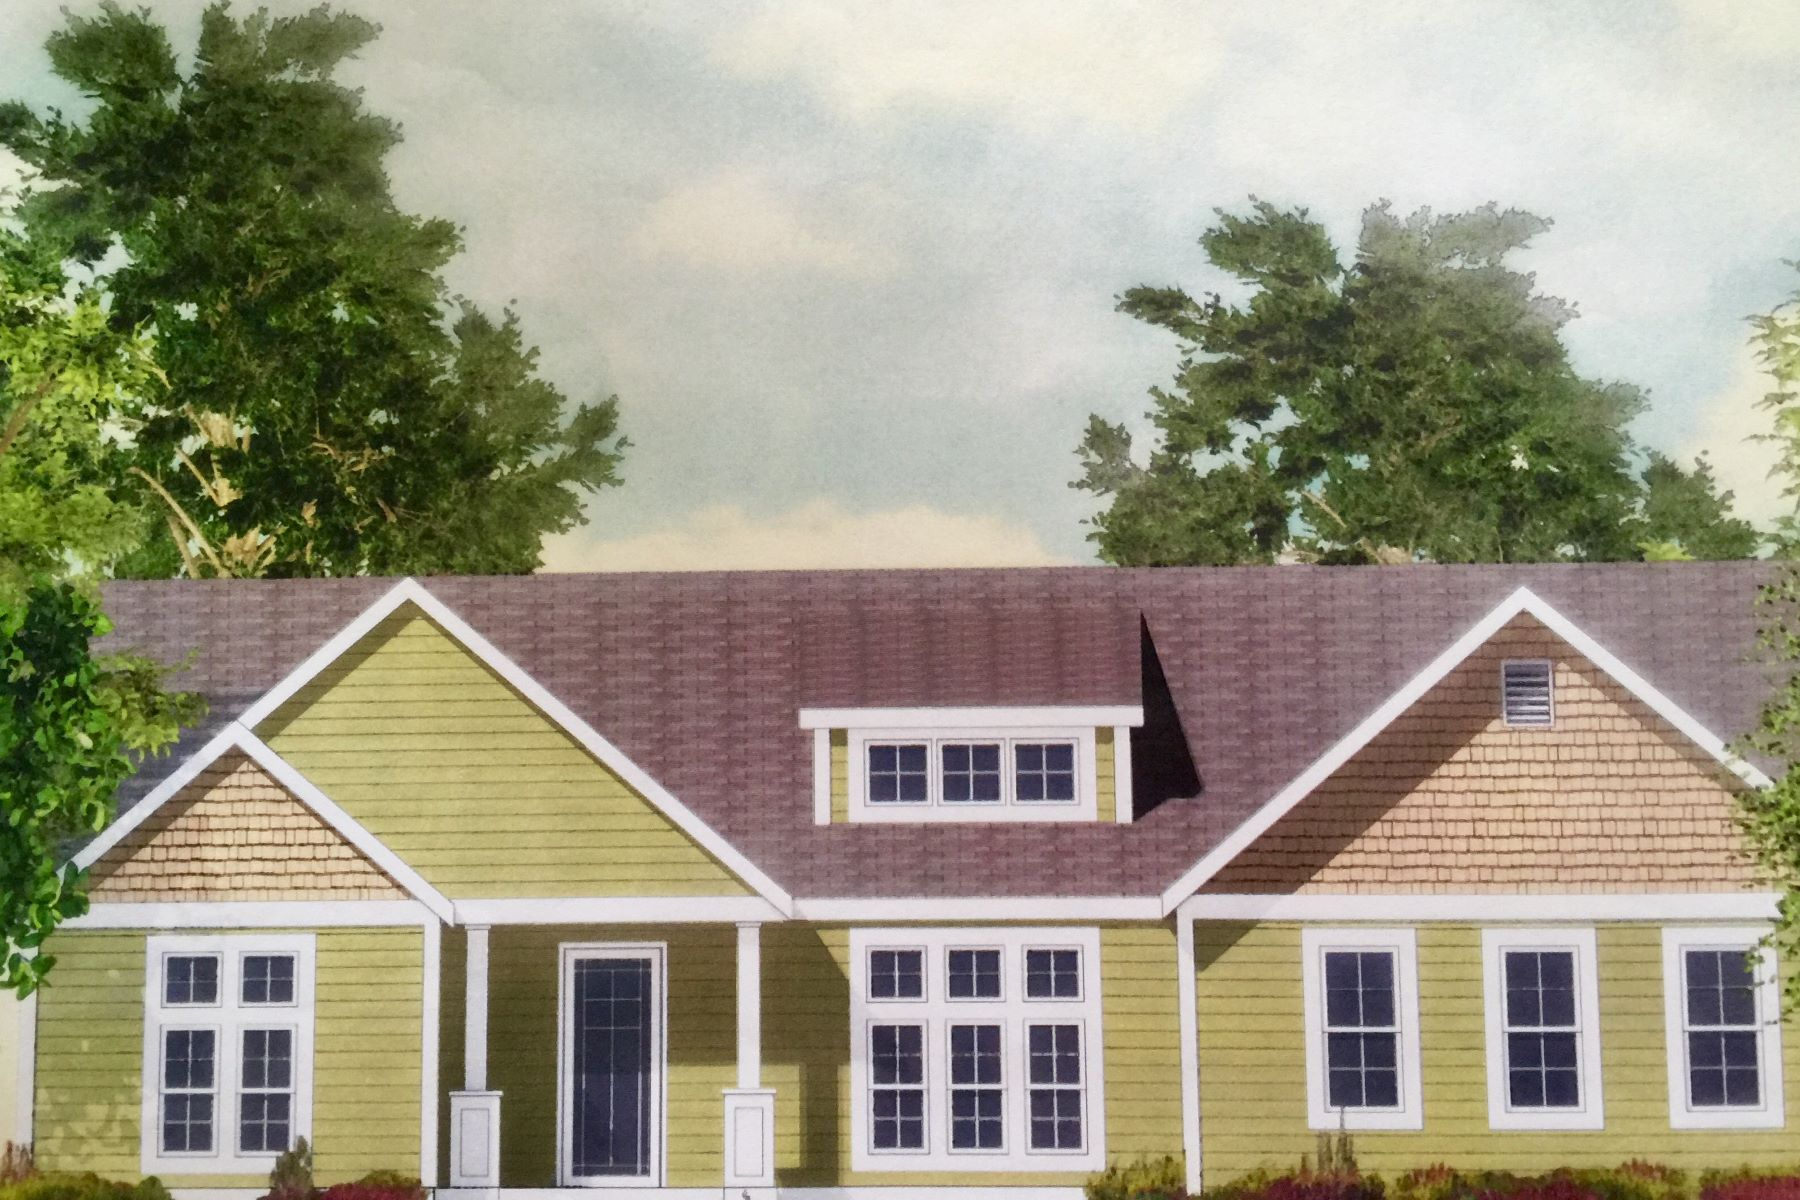 Moradia para Venda às Autumn Ridge Development 5 Autumn Ridge Westbrook, Connecticut, 06498 Estados Unidos